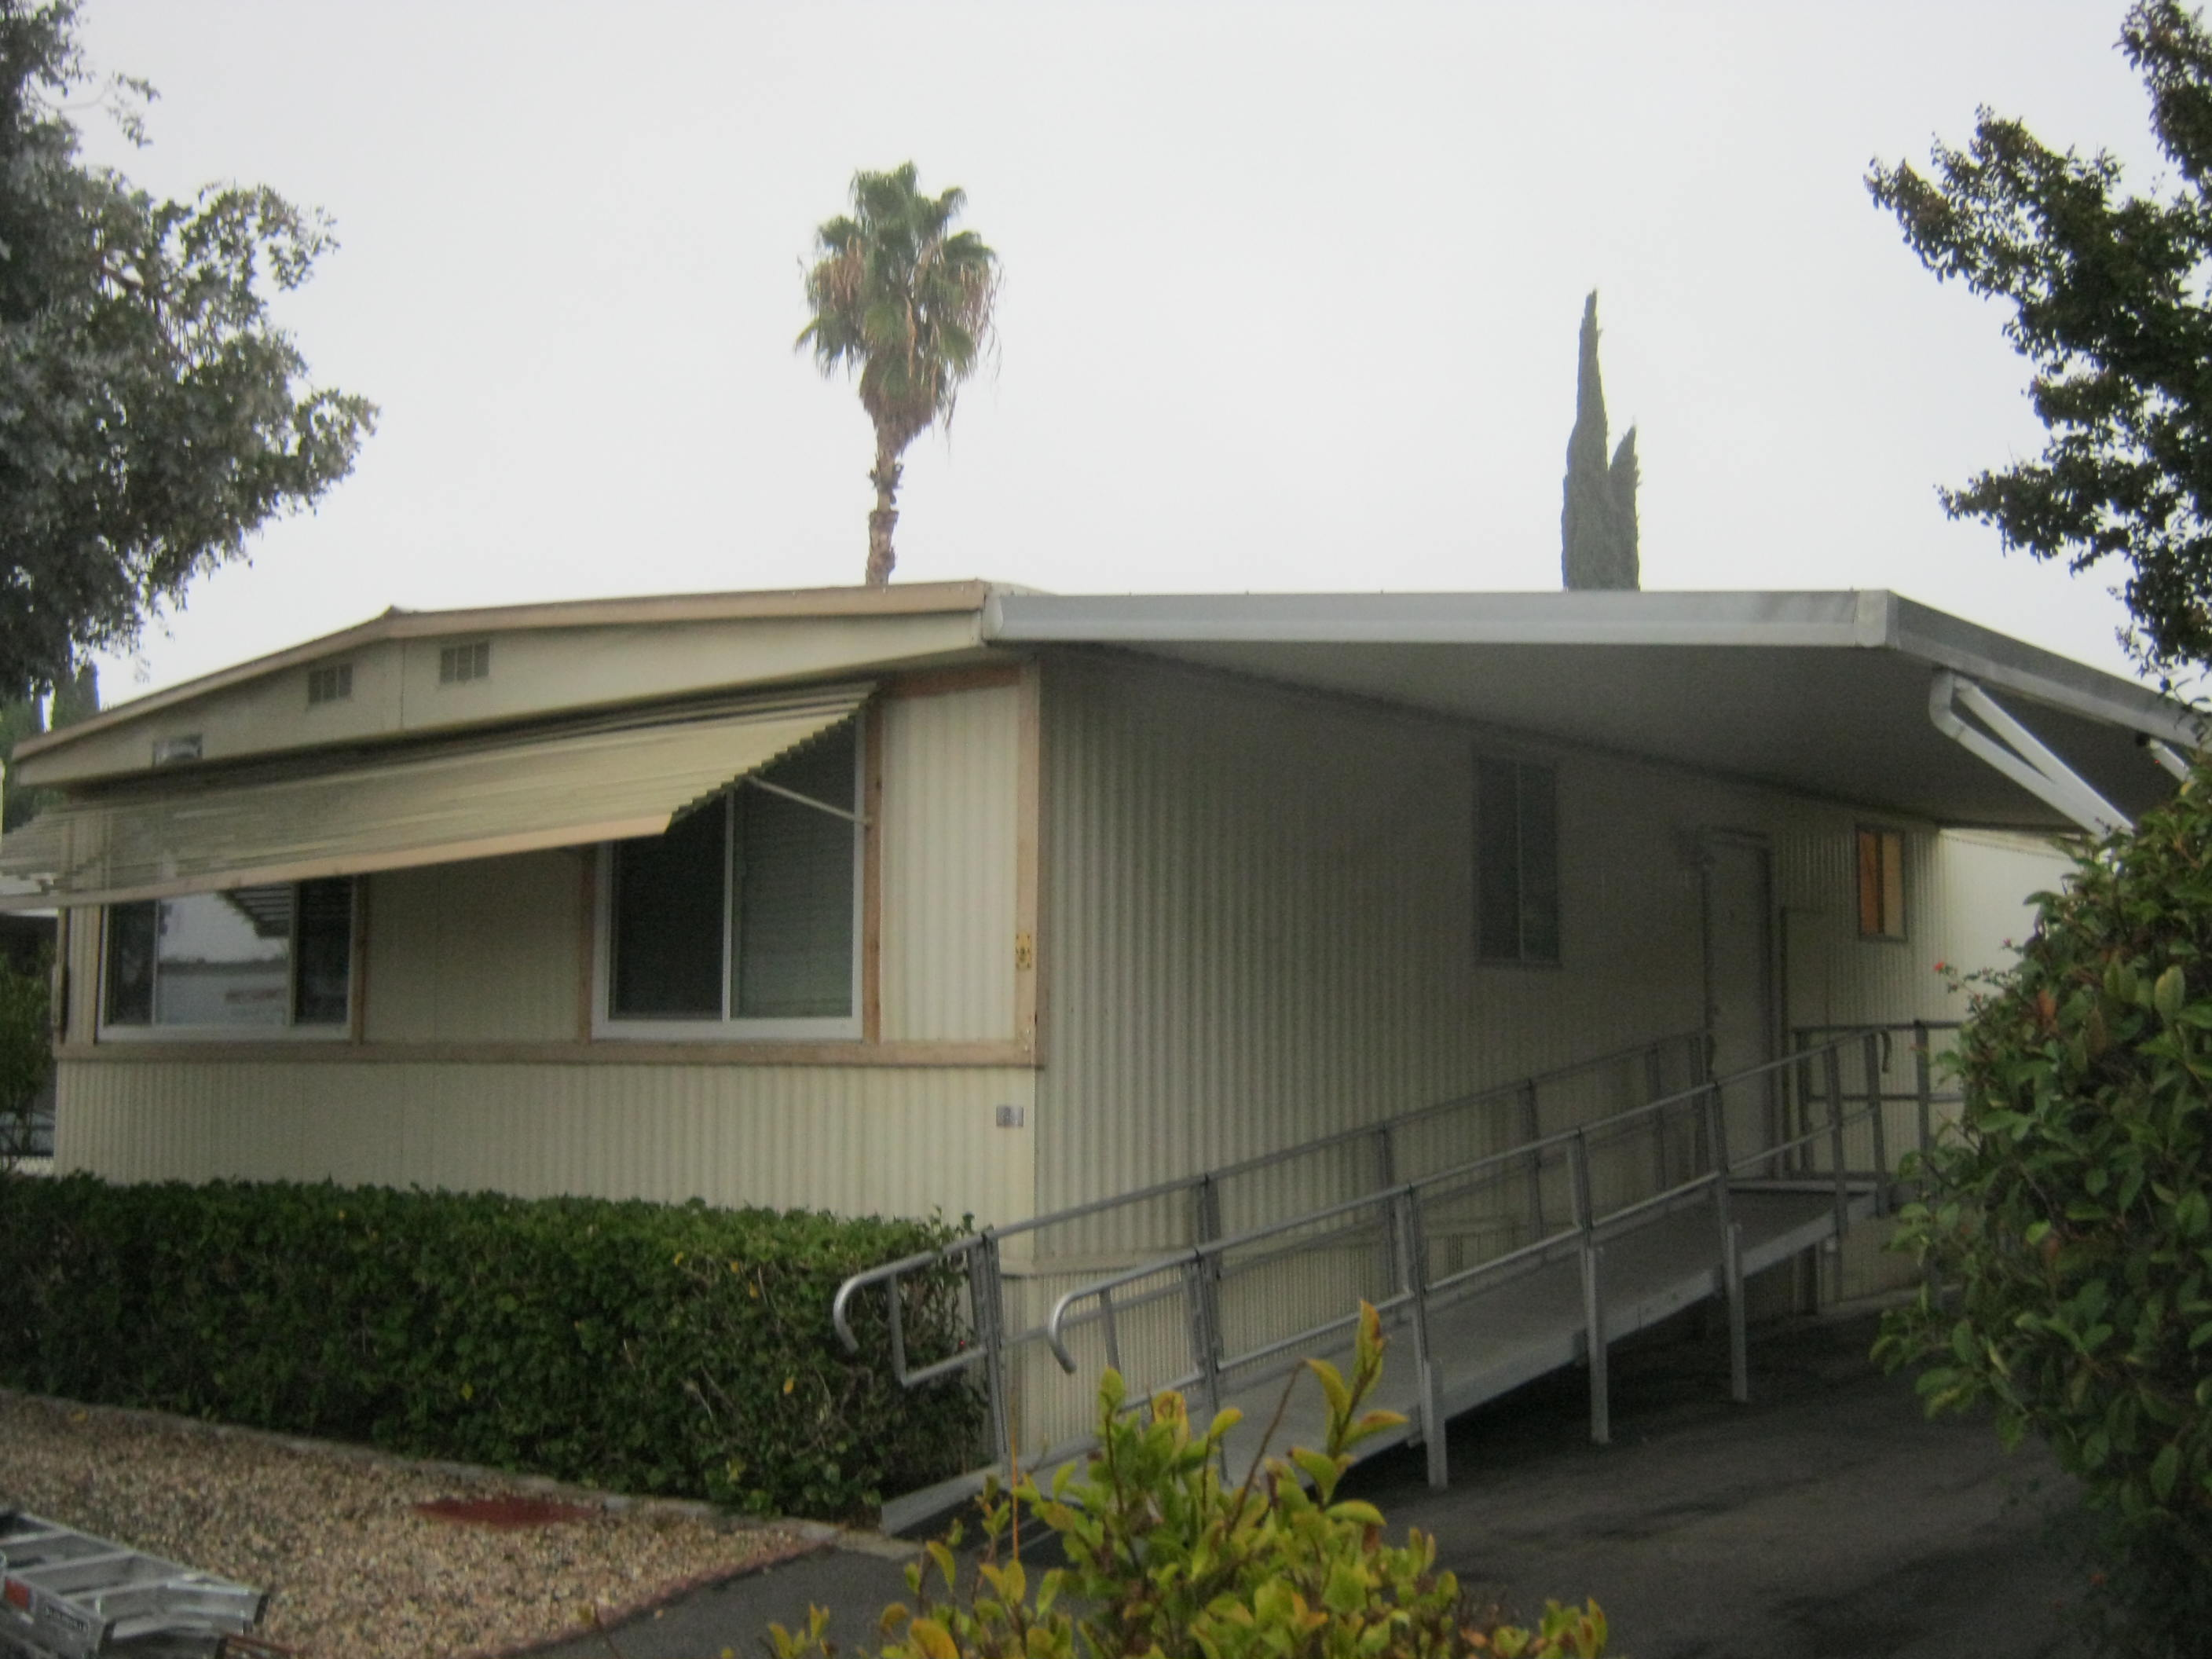 Before (1 of 4 mobile homes)